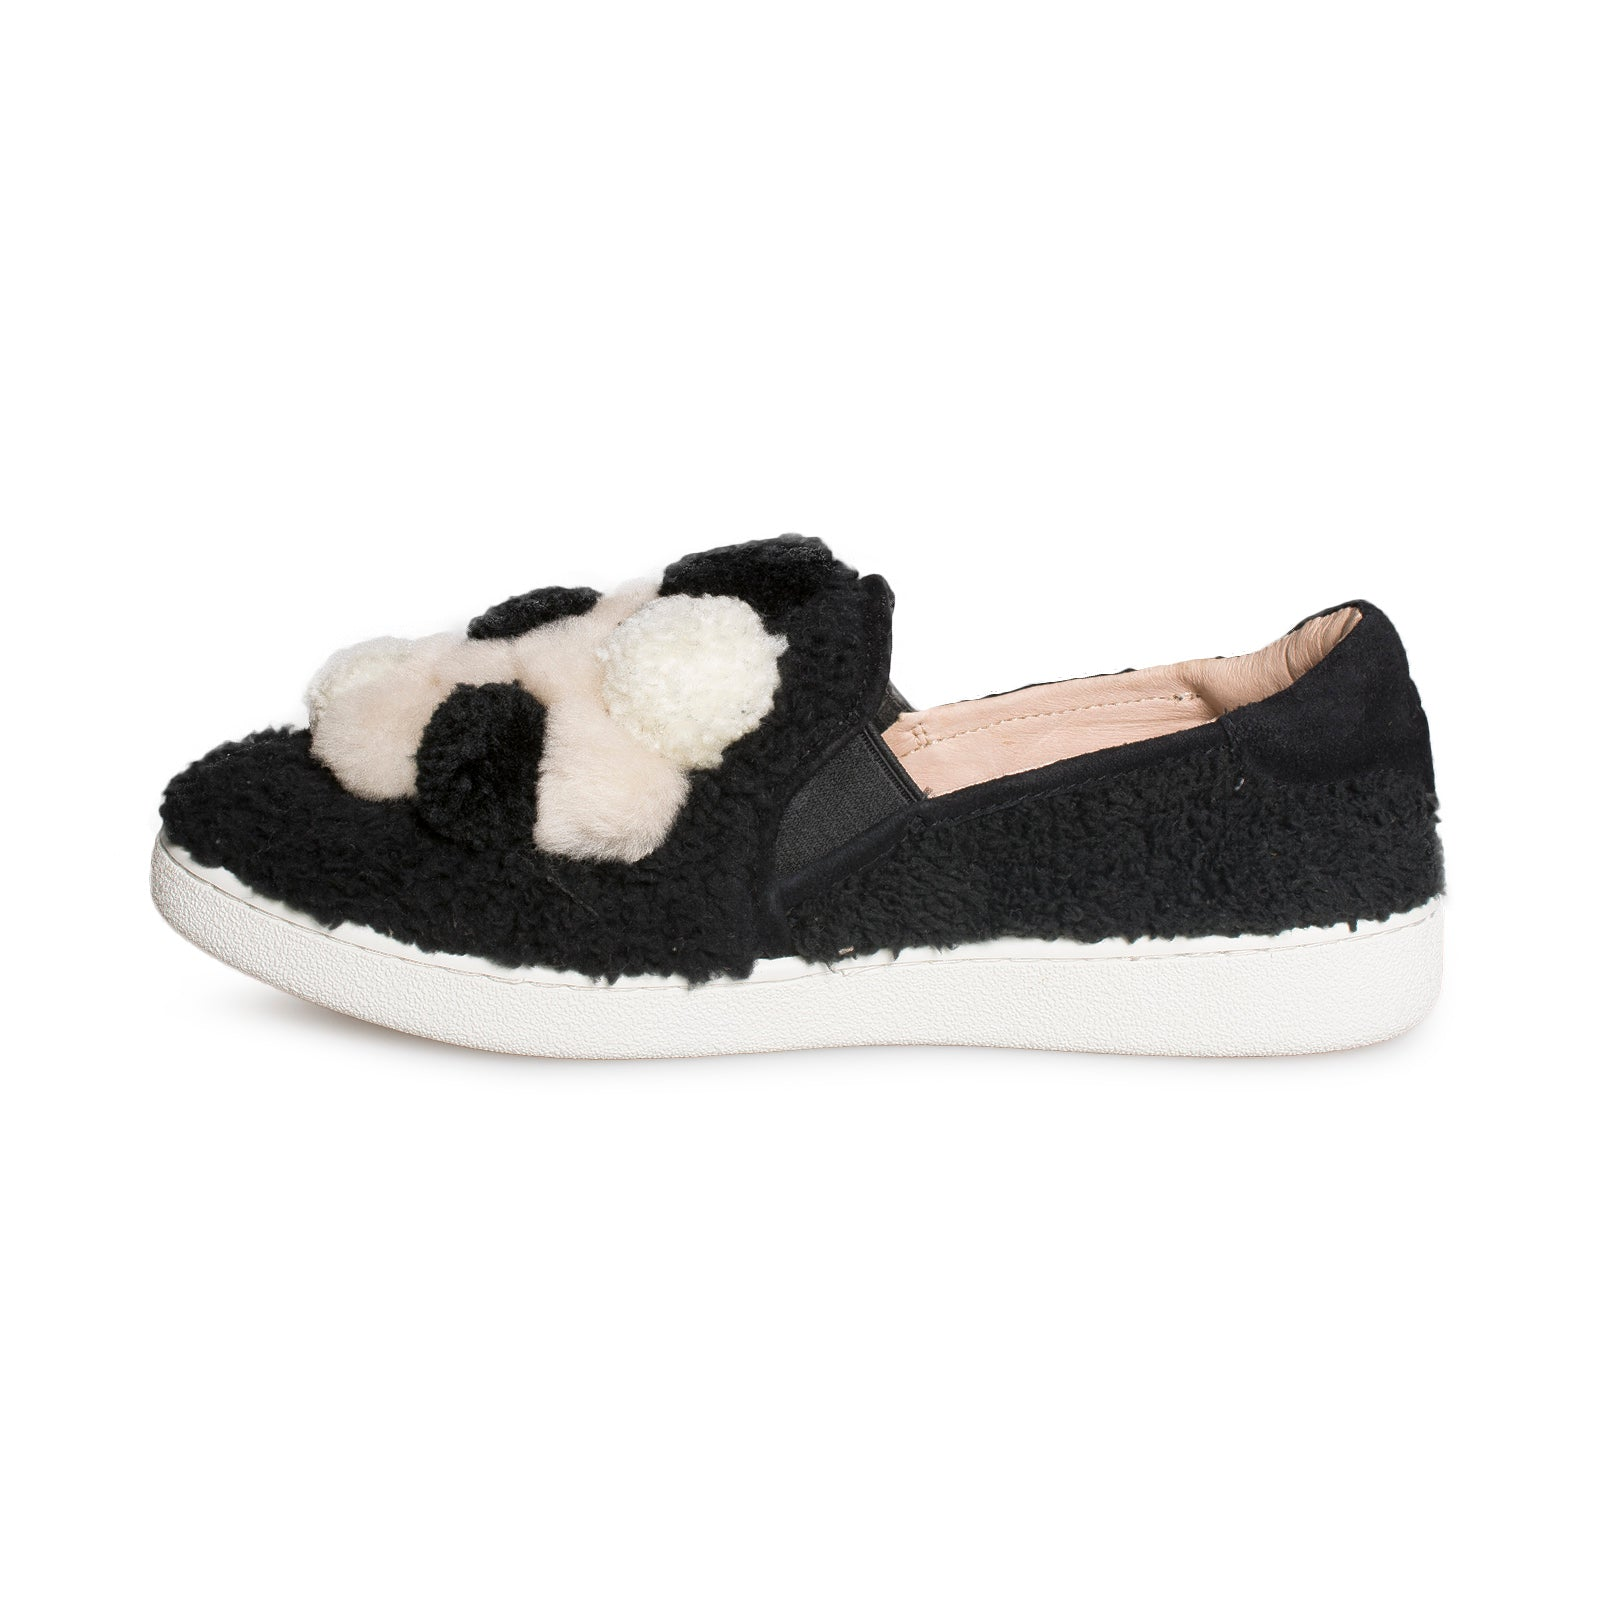 1ed7cff96d5 UGG Ricci Pom Pom Black Shoes - Women's